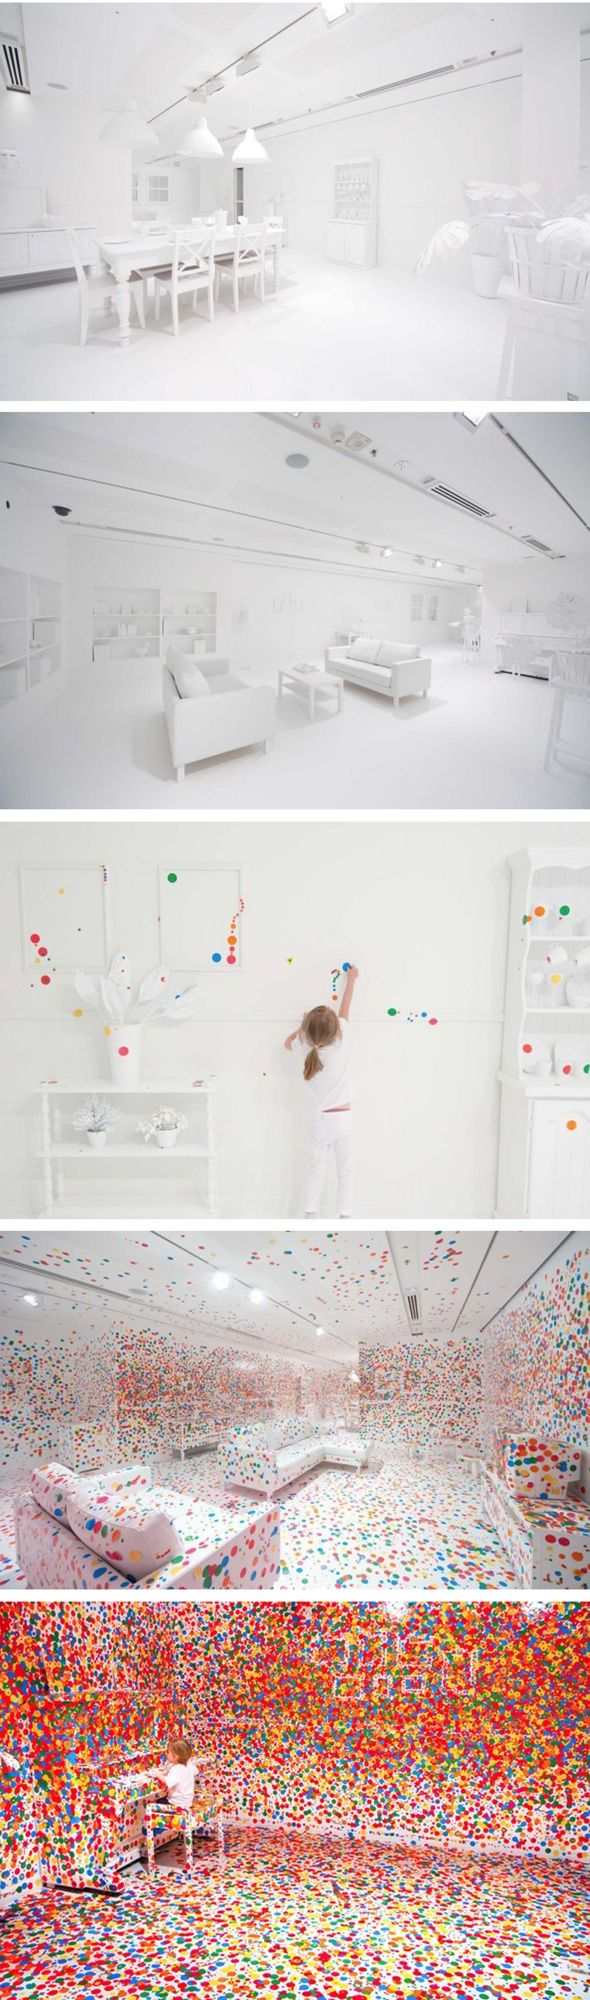 What happens when you give thousands of kids thousands of colored dots in an all white room? The Obliteration Room-Interactive Art Exhibit: